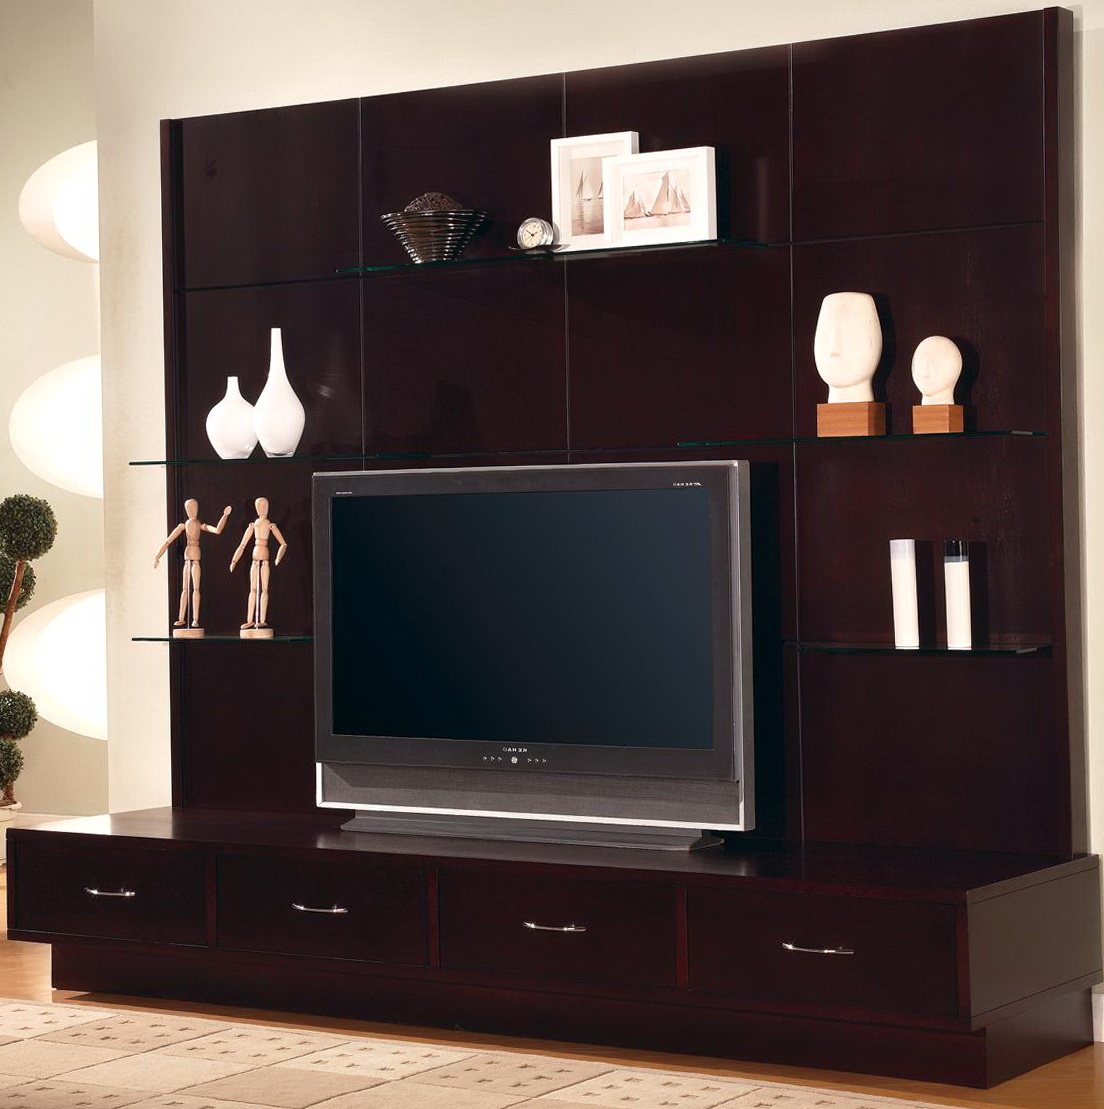 Wall Shelving Units For Tv